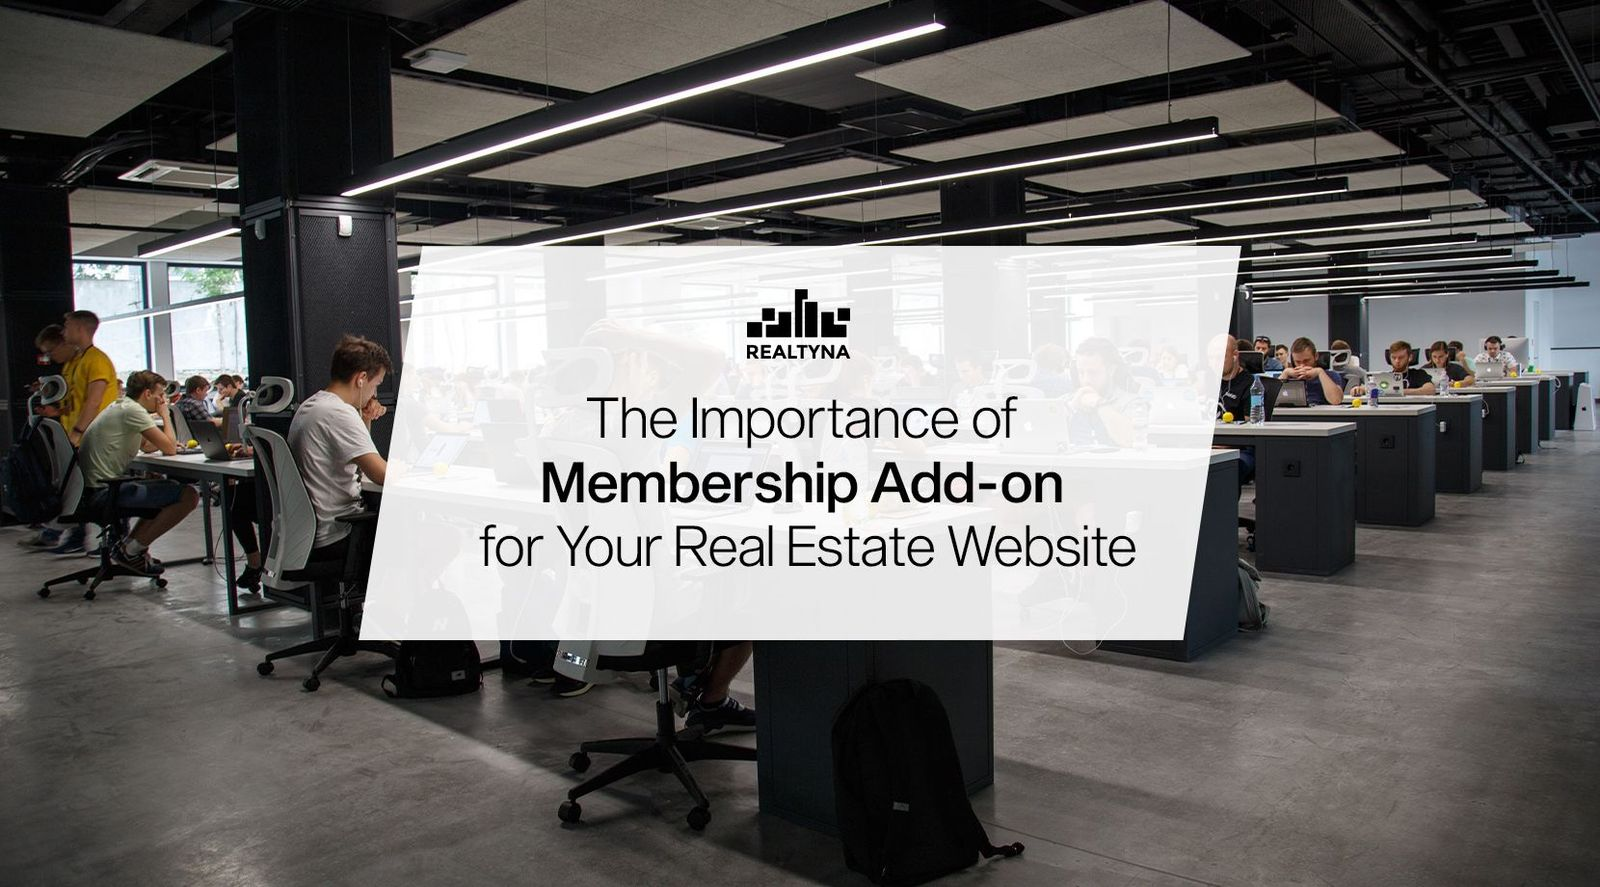 The Importance of Membership Add-on for Your Real Estate Website